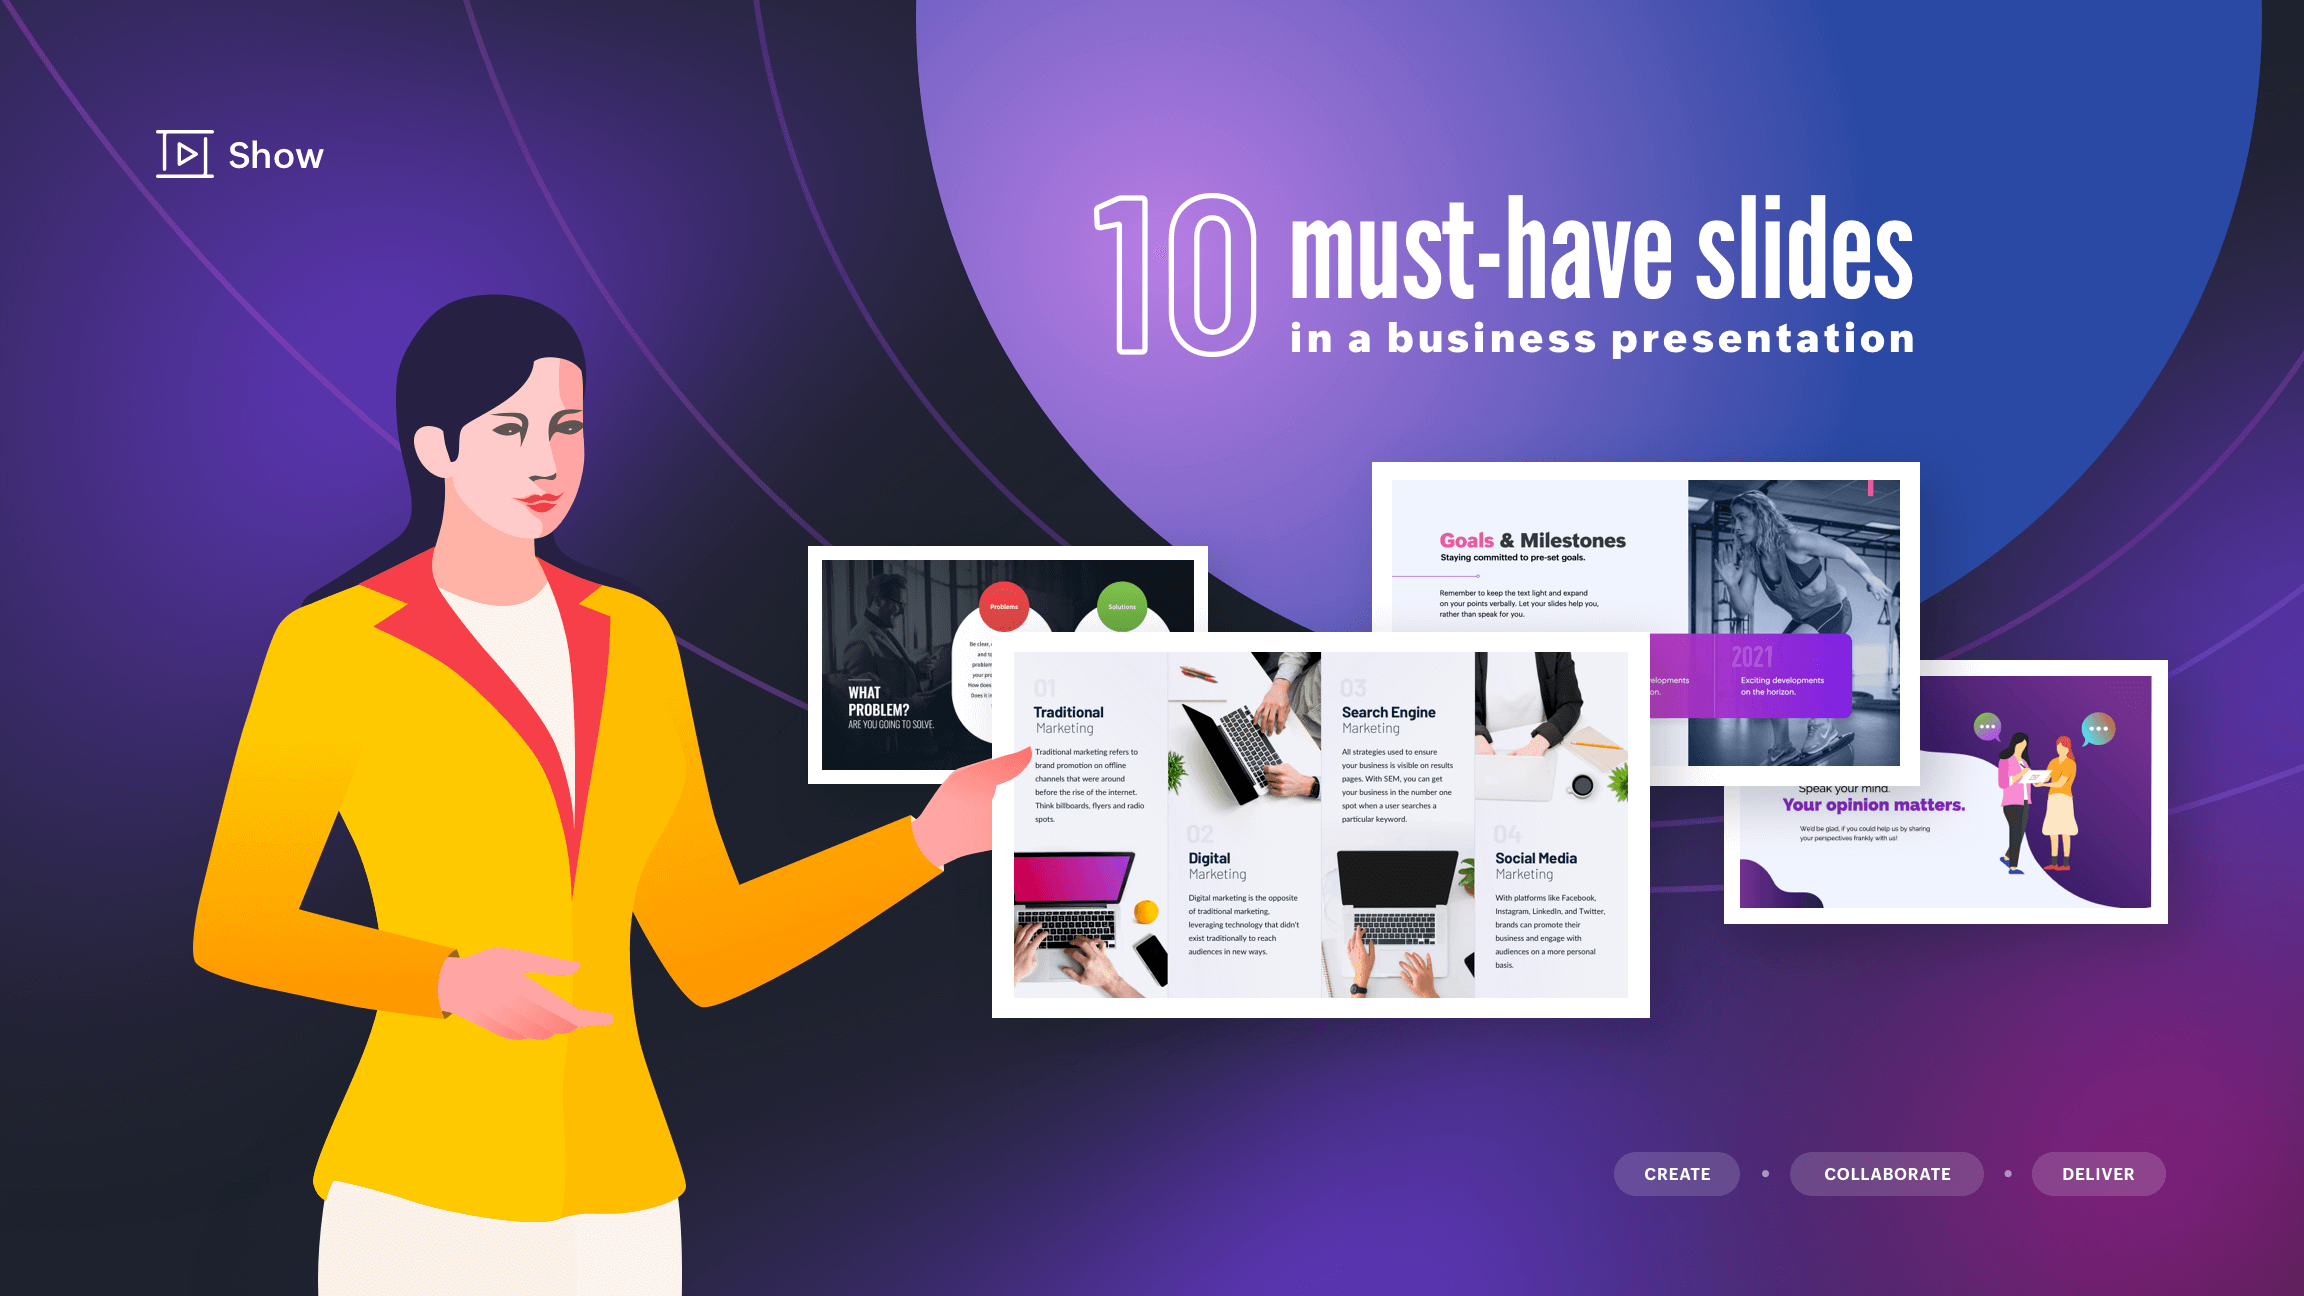 10 must-have slides in a business presentation